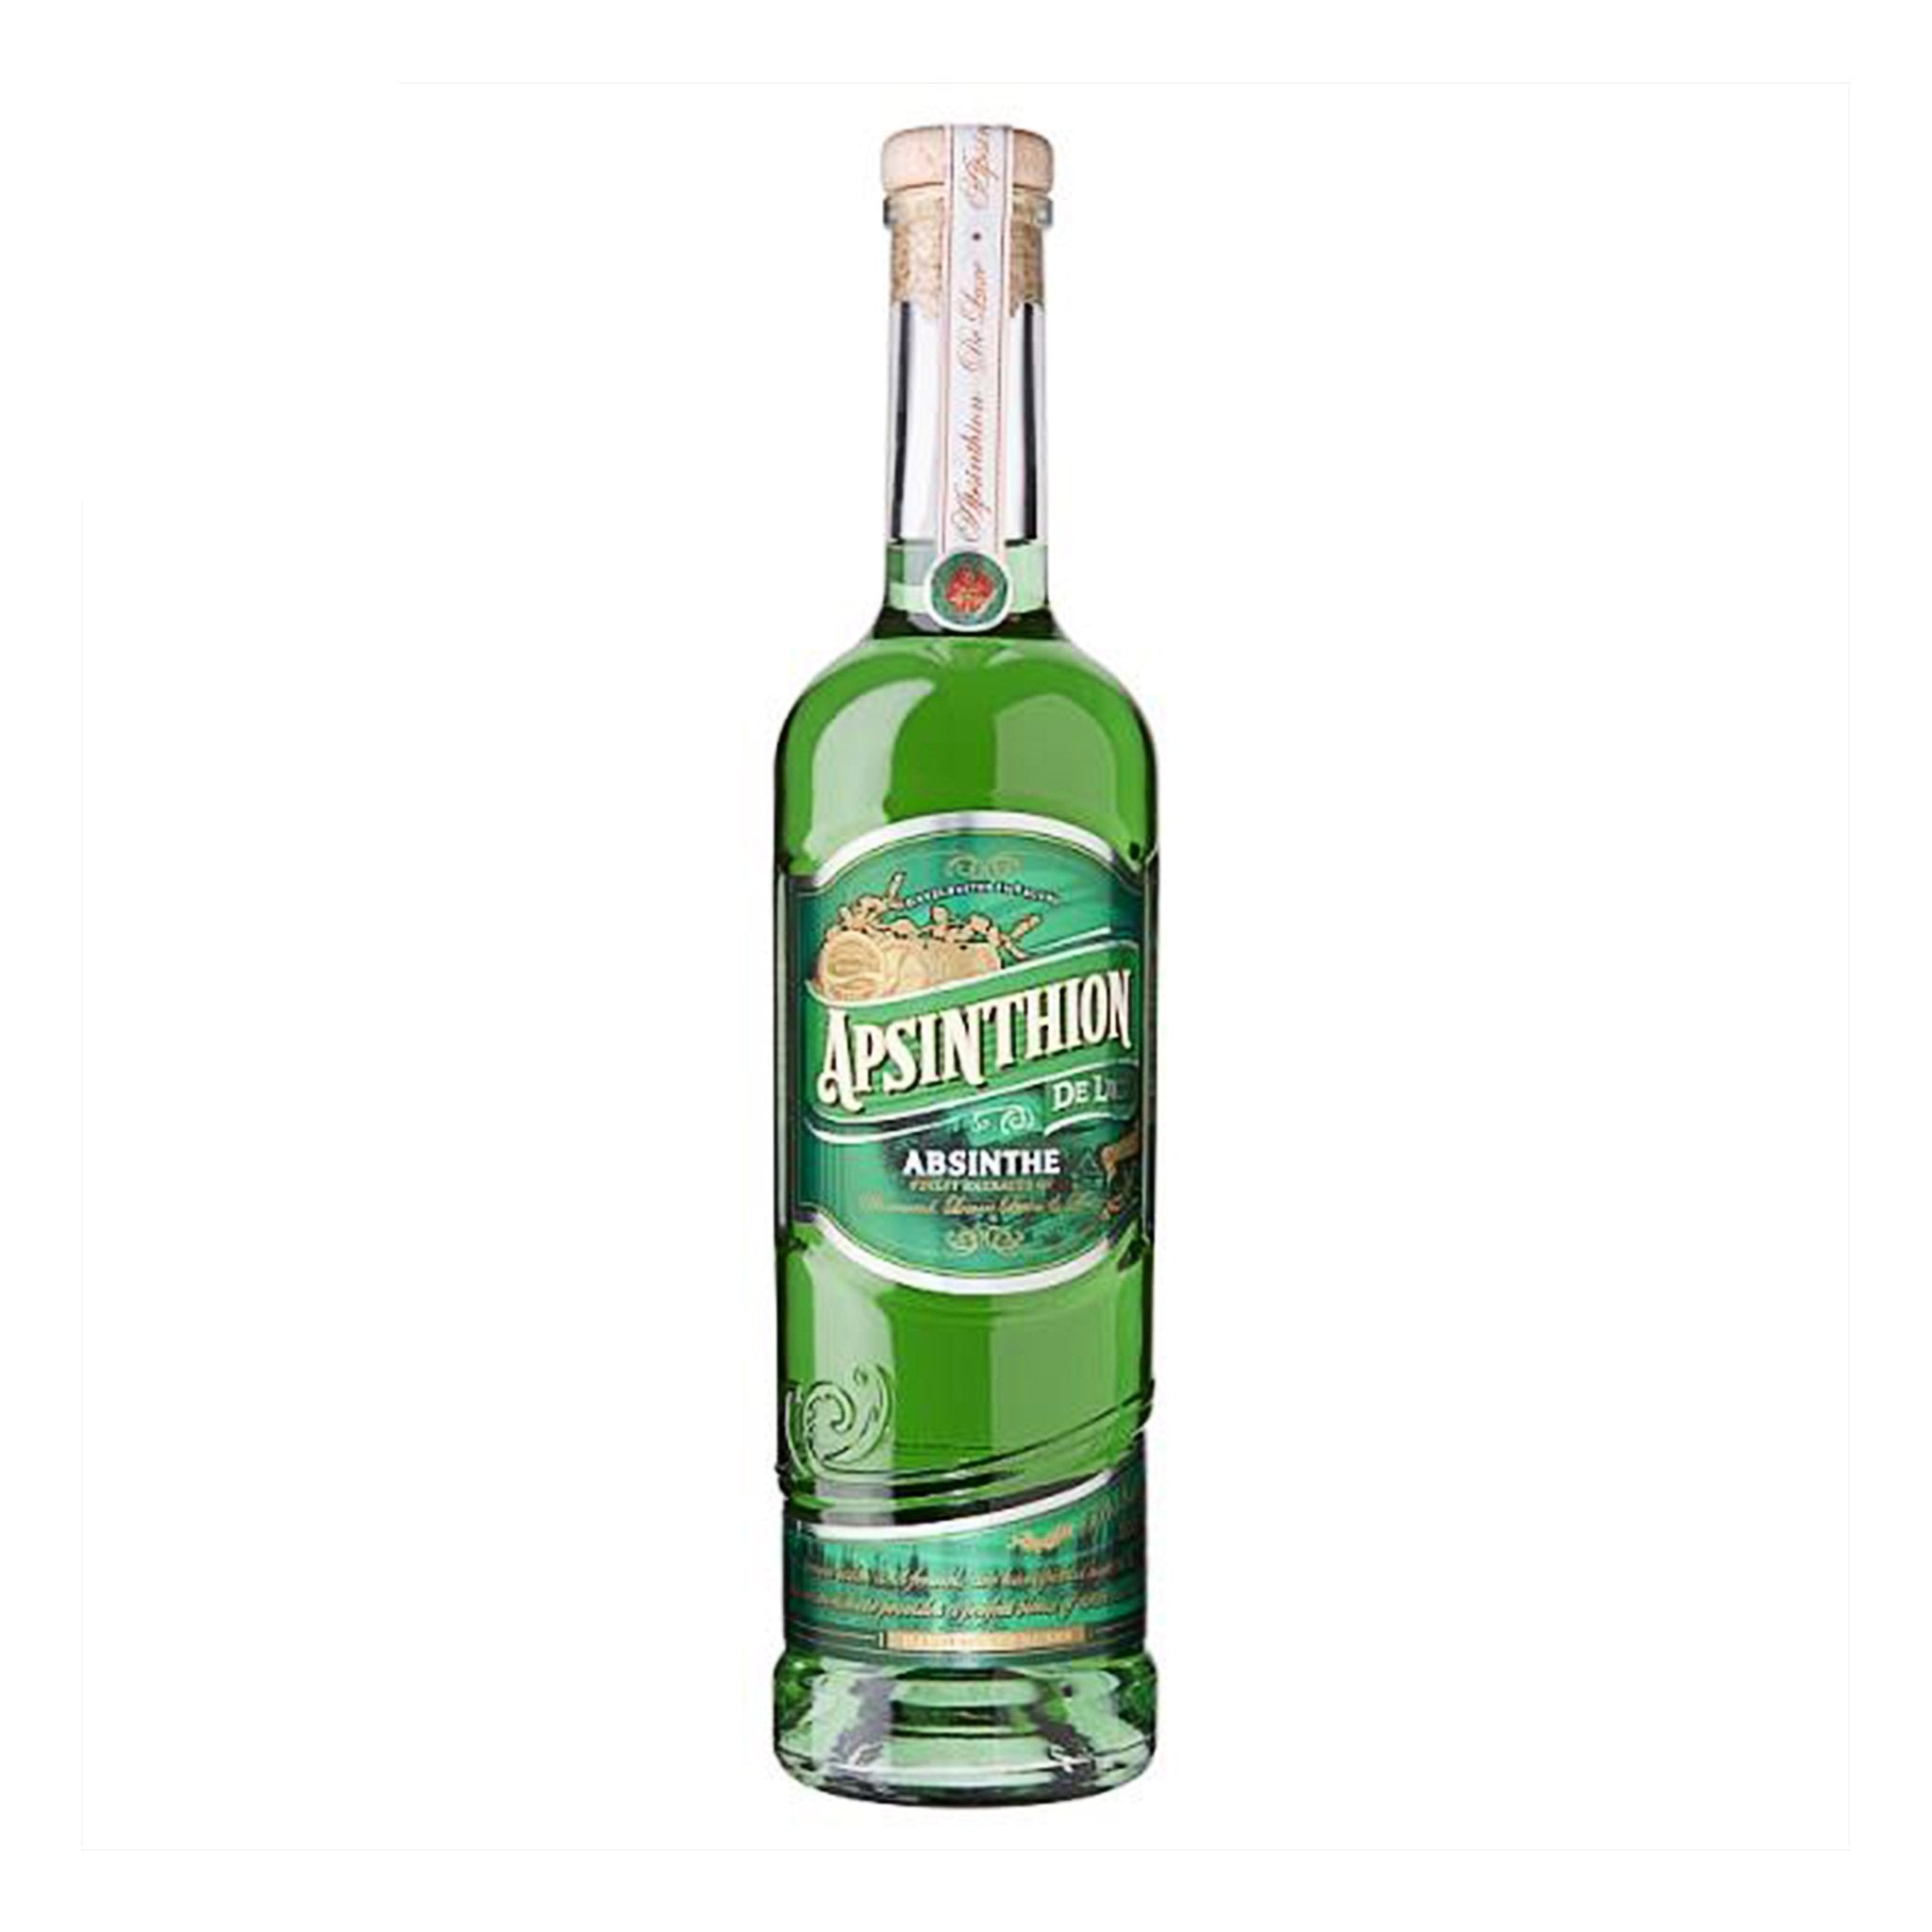 Apsinthion De Luxe Absinthe 50cl, Food, Beverages & Tobacco by Drinks Shop